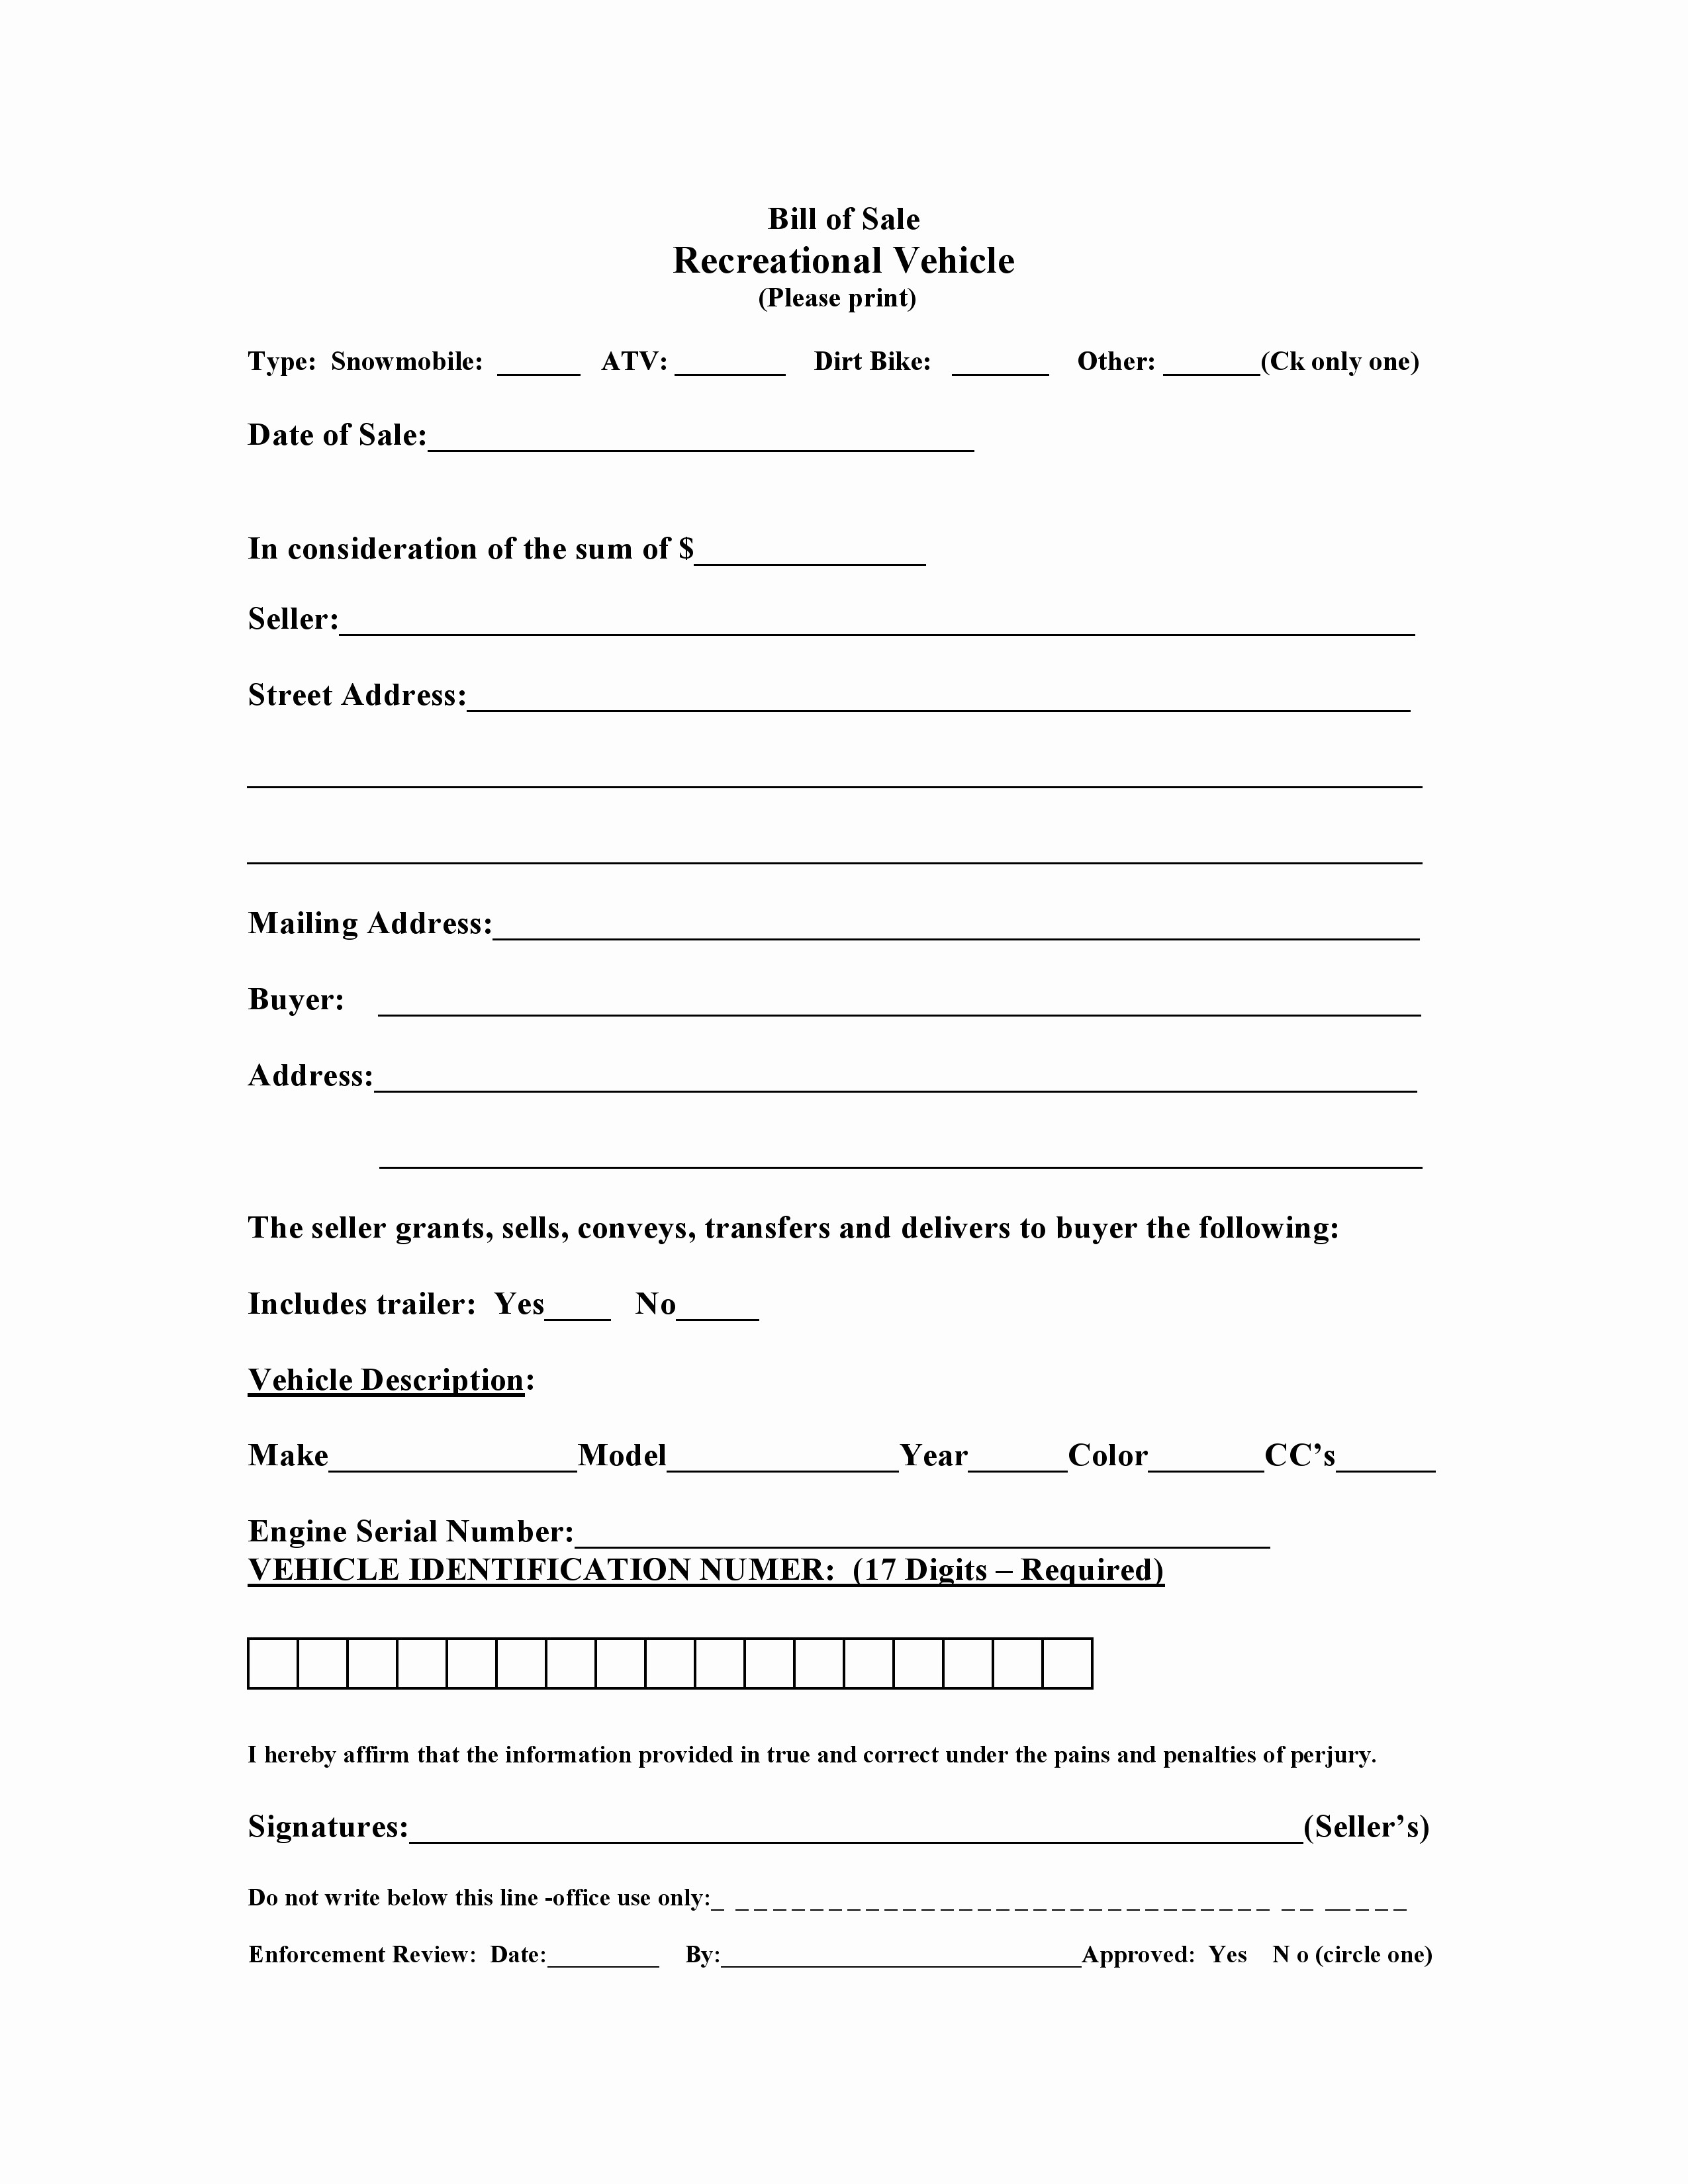 Bill Of Sale Auto form Awesome Free Massachusetts Recreational Vessel Vehicle Bill Of